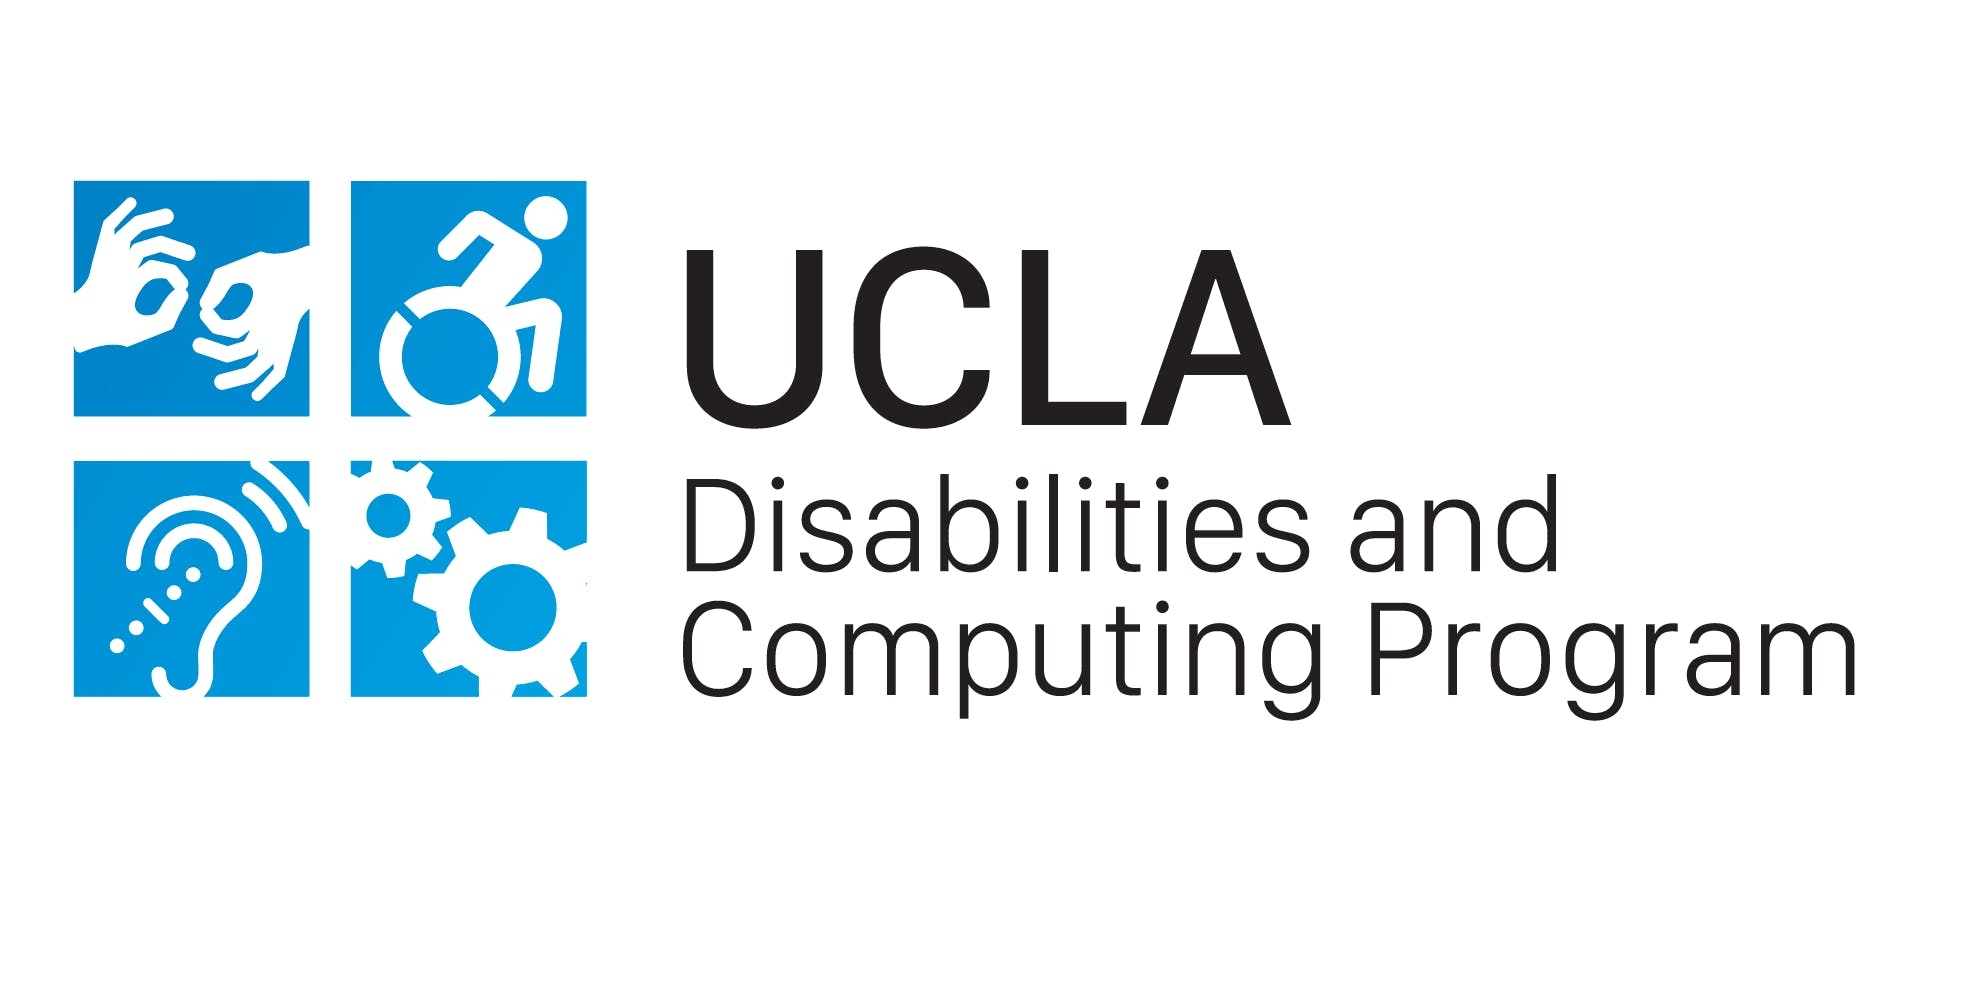 Disabilities and Inclusive Design Training